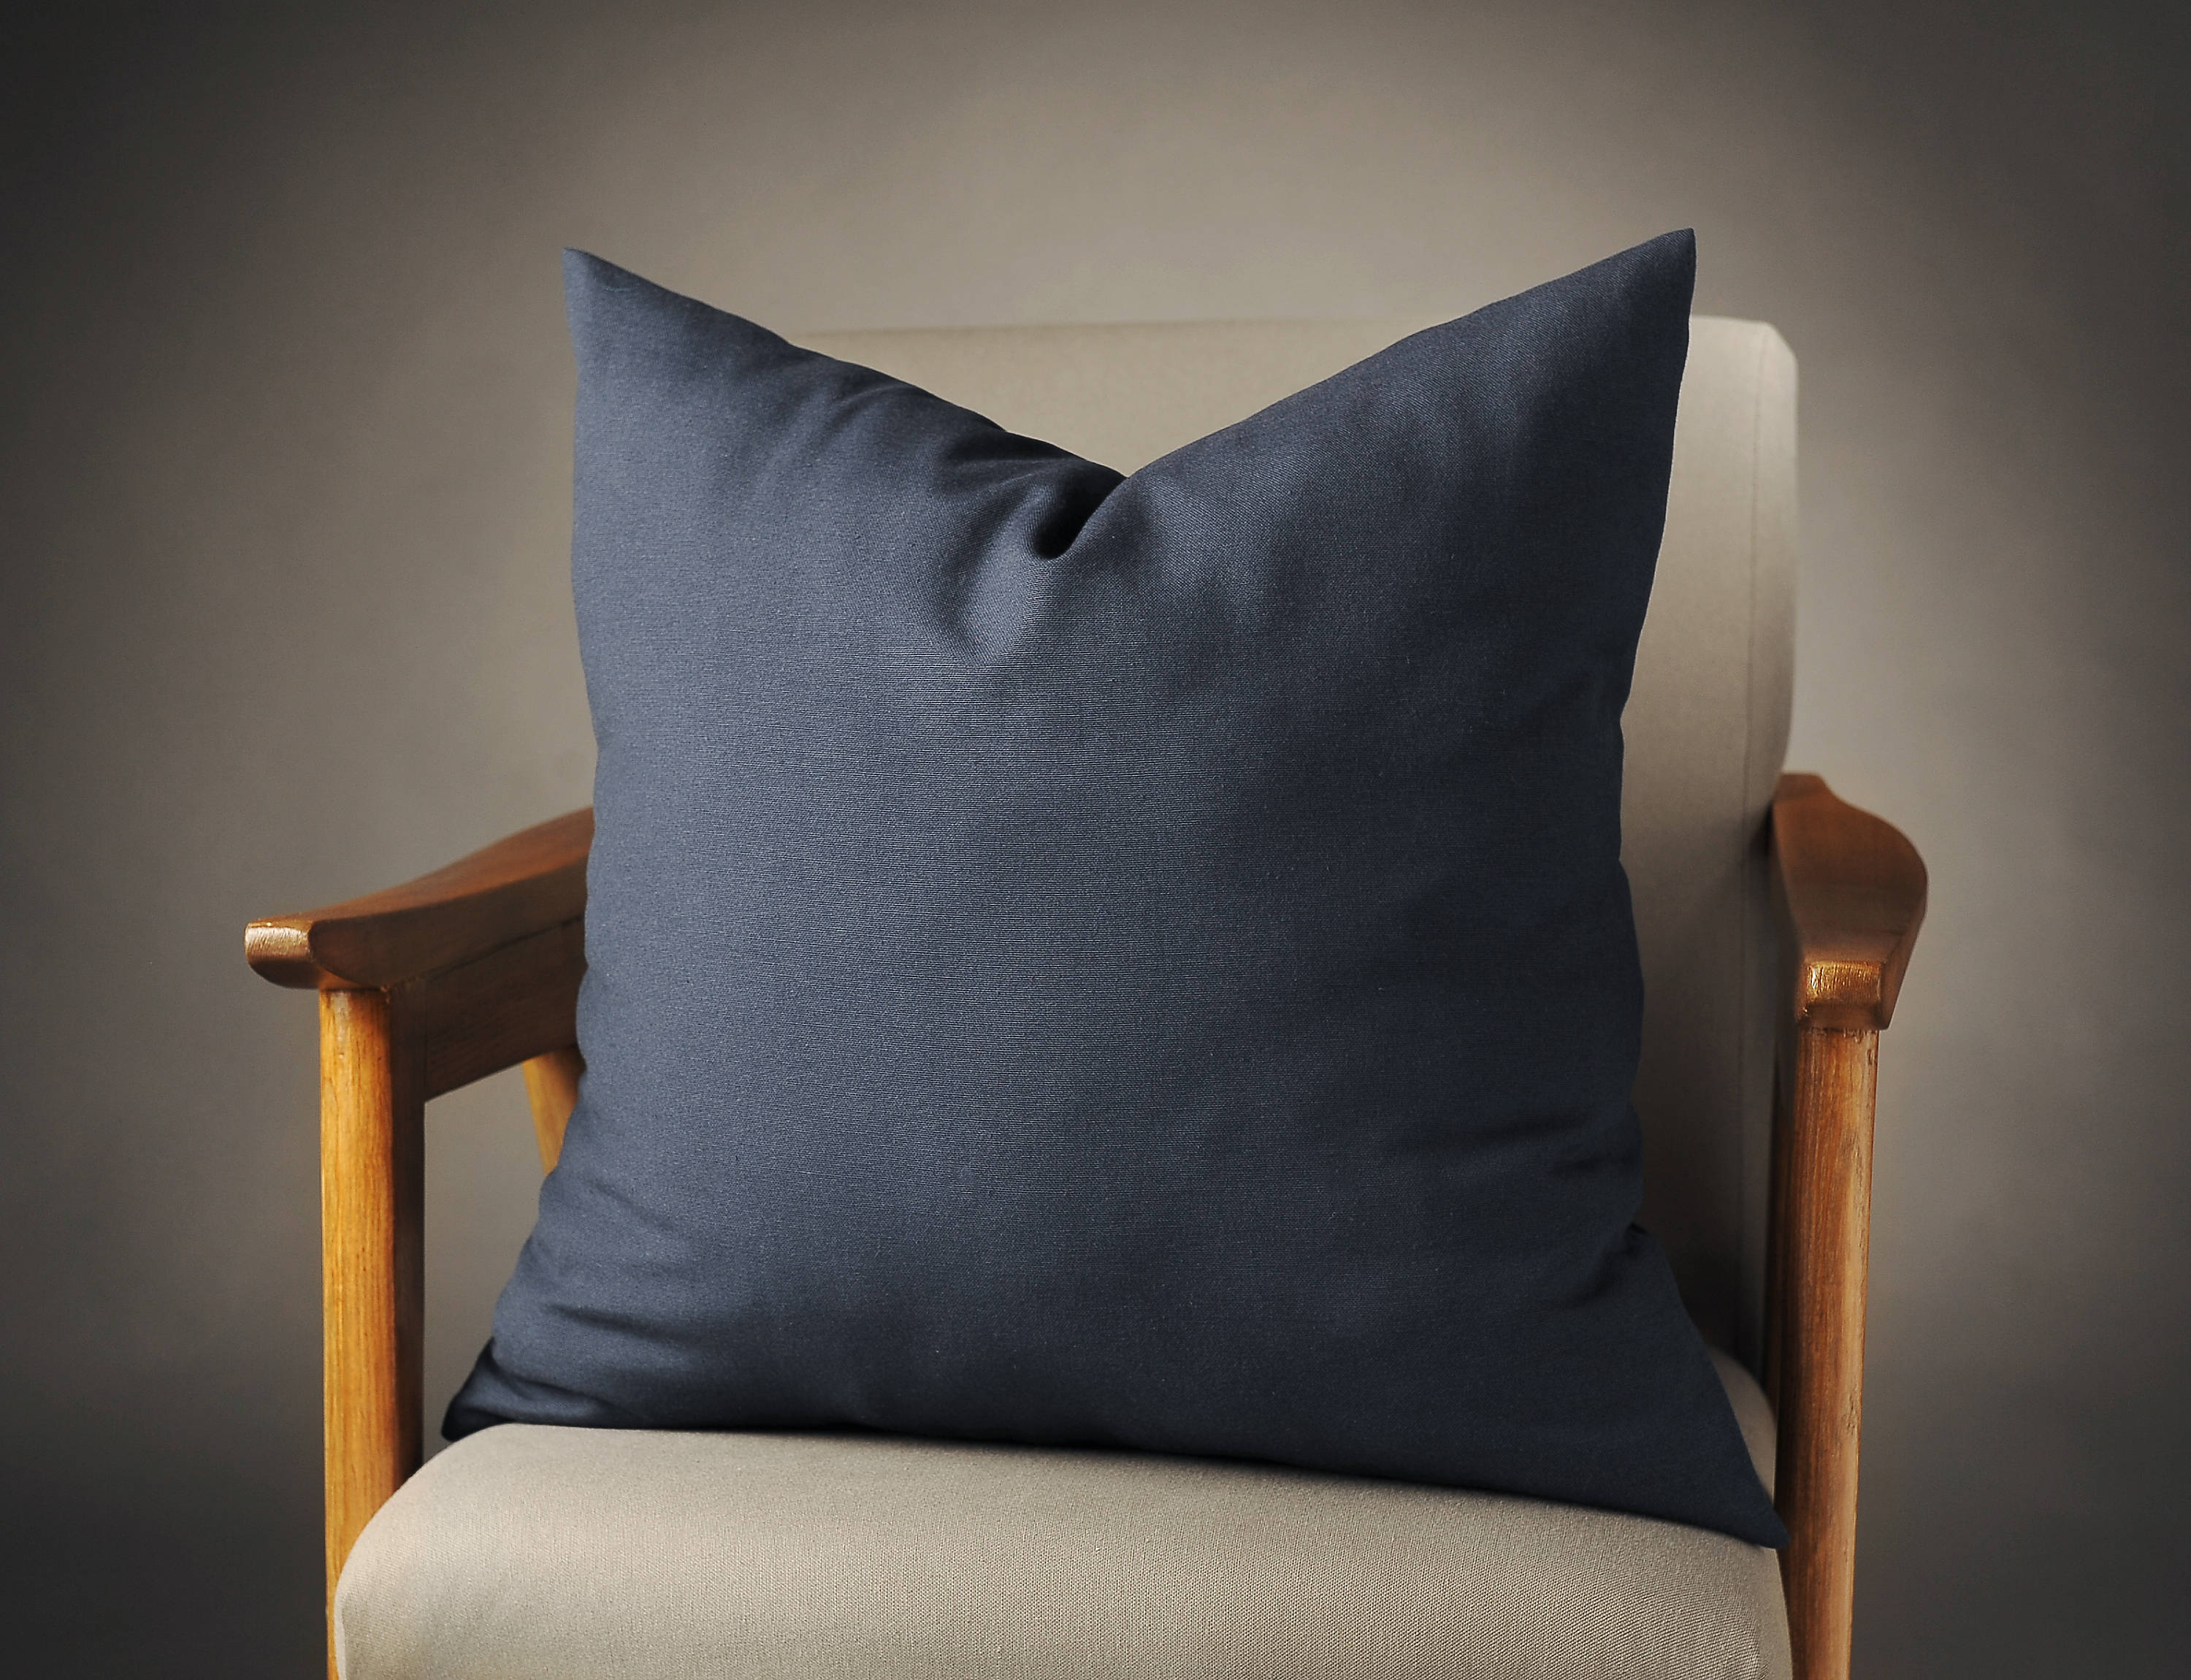 Blue pillow throw pillows throw pillow covers decorative pillow covers couch pillow